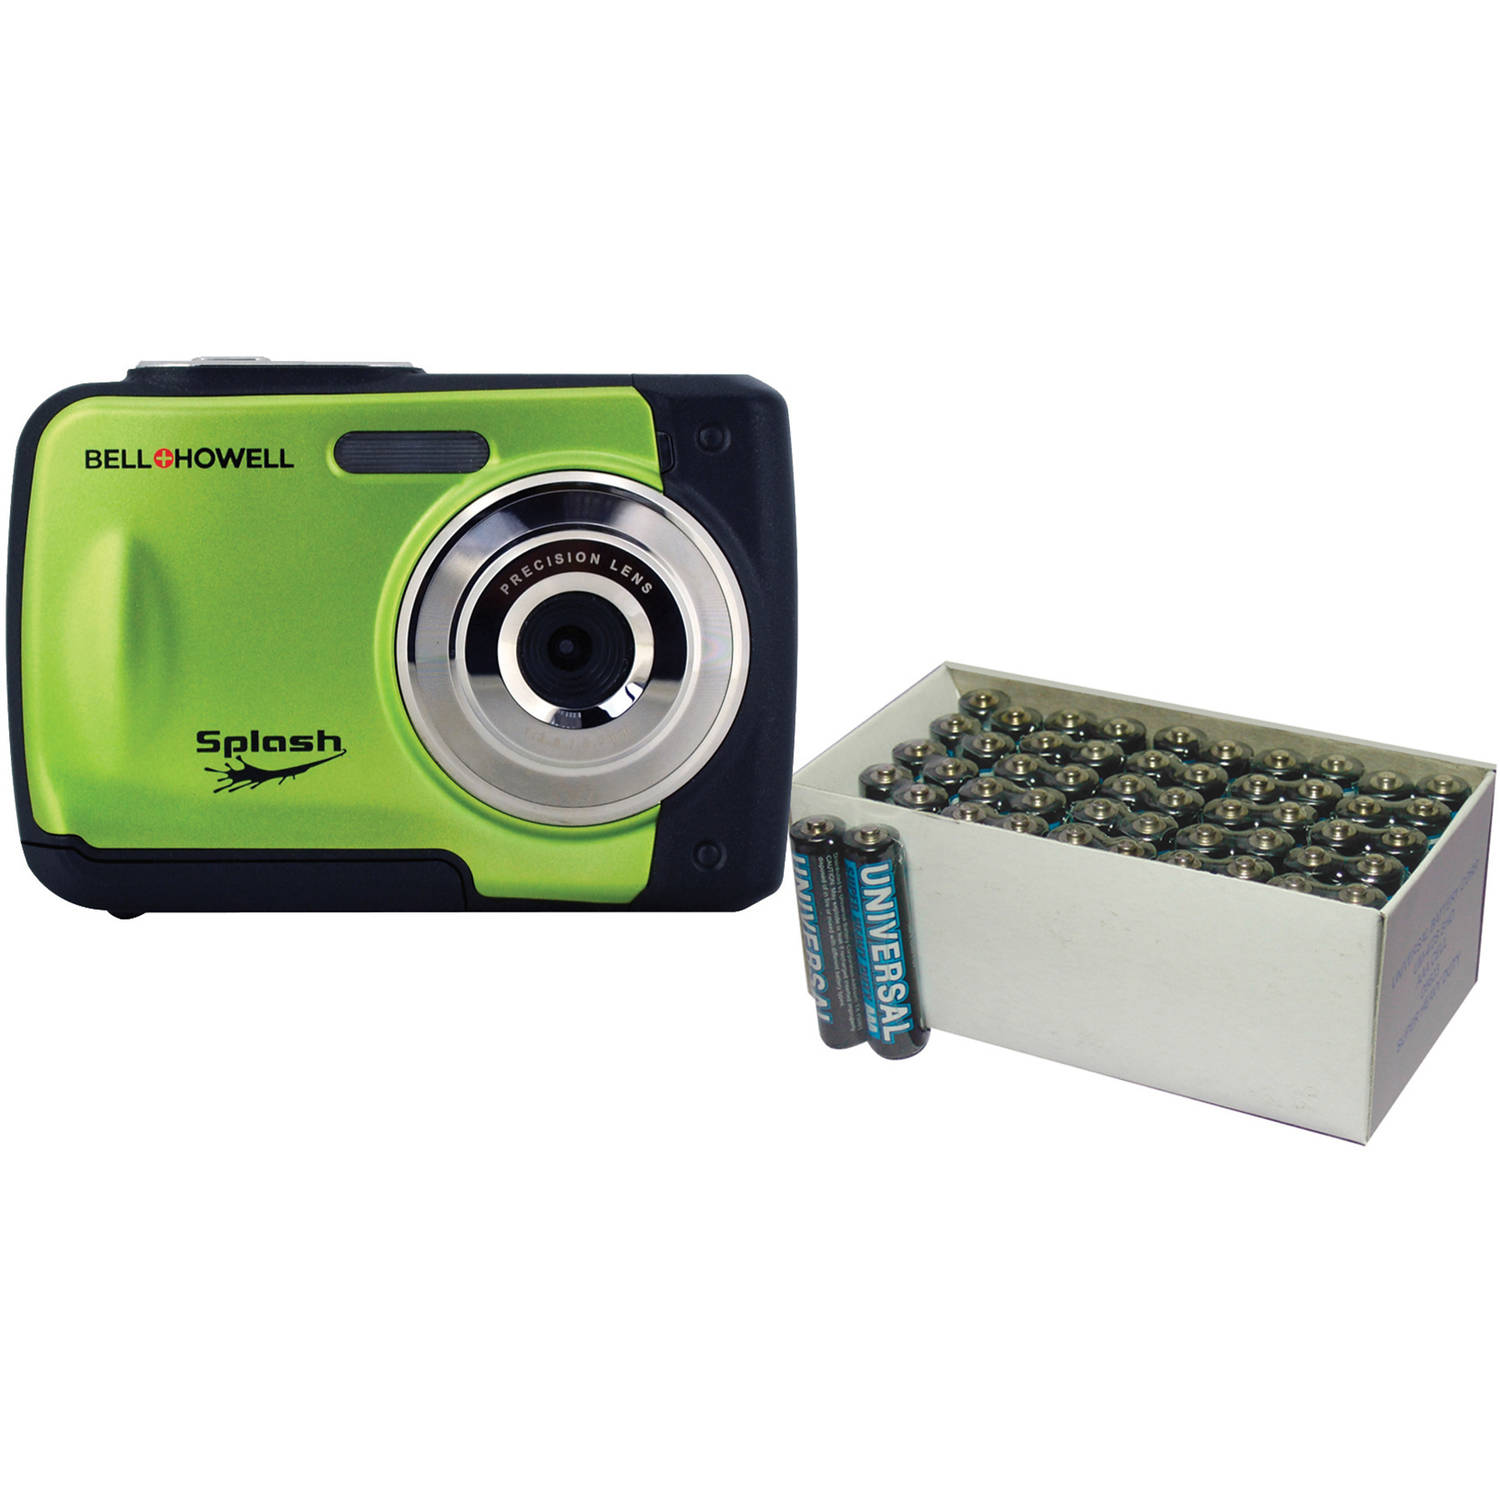 Bell+Howell Green WP10 Waterproof Digital Camera with 12 Megapixels and UPG 50-Pack AAA Batteries